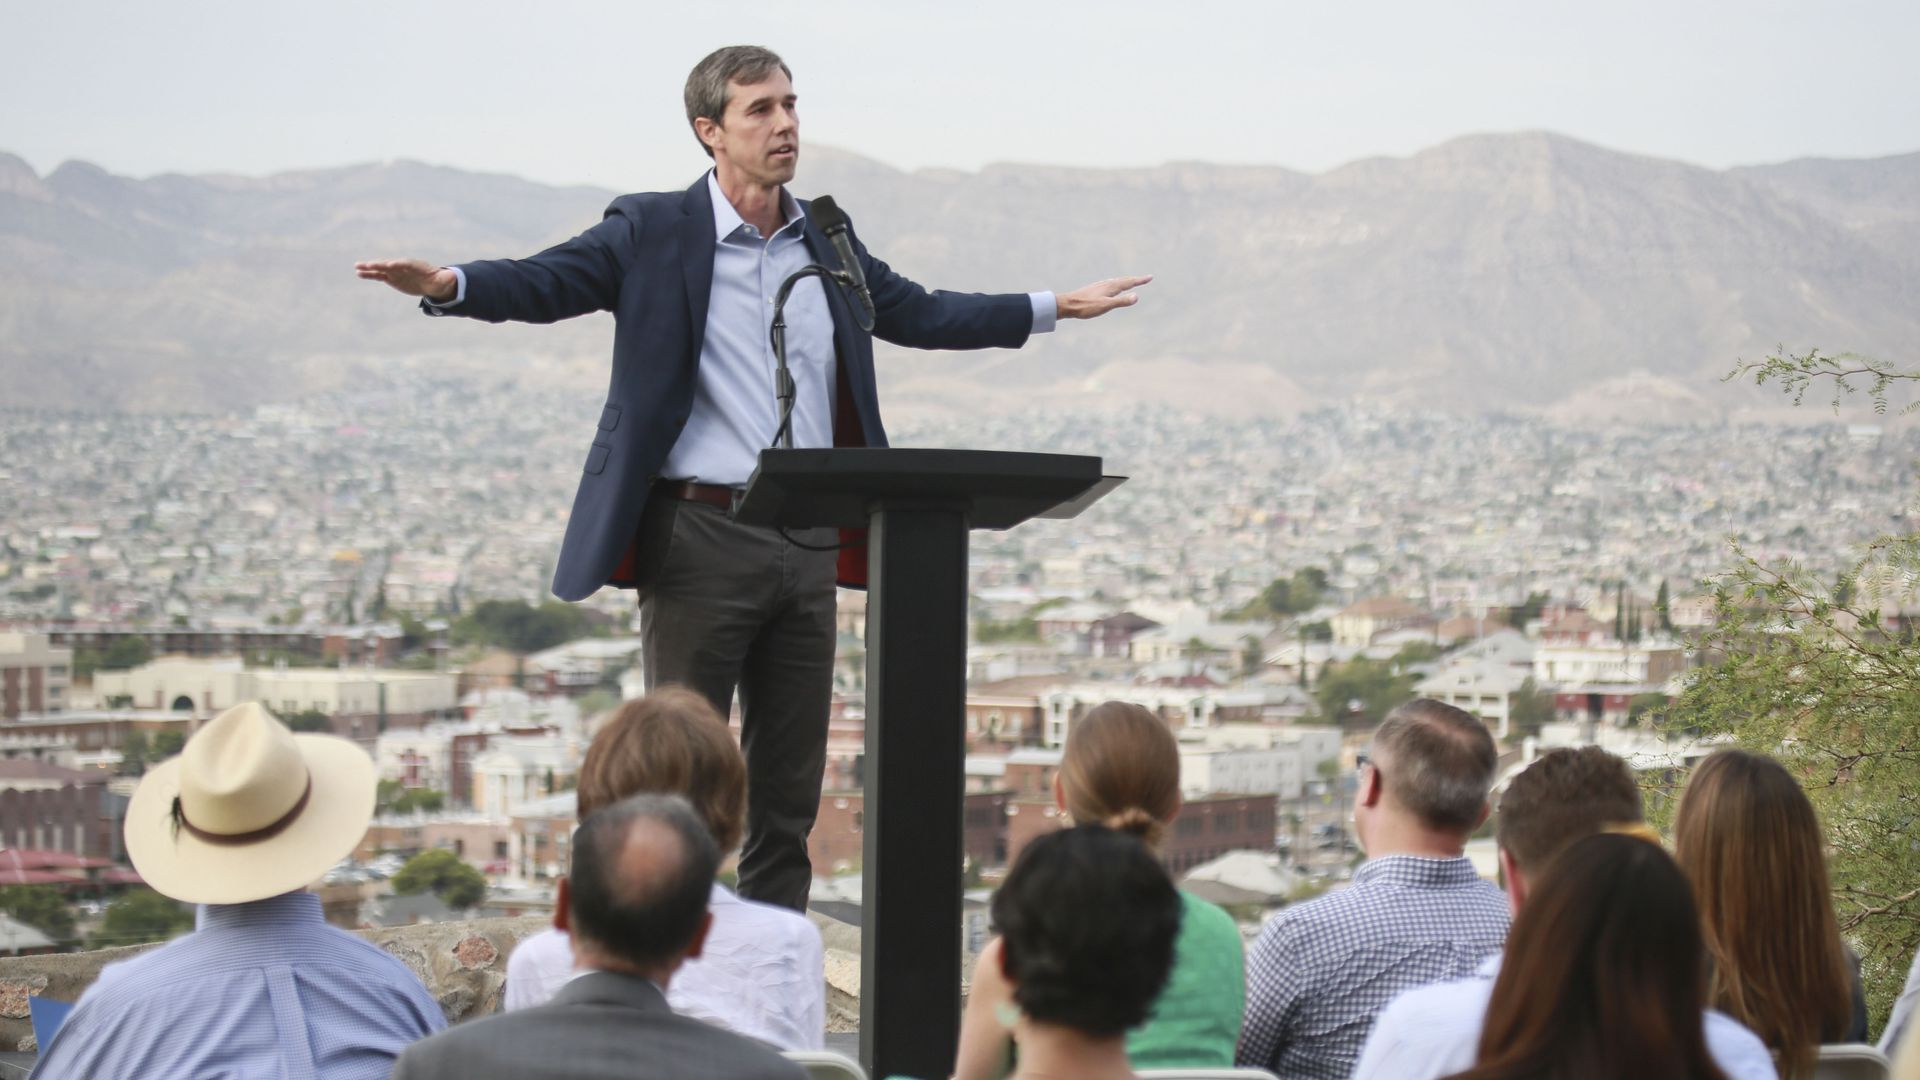 Democratic presidential candidate, former Rep. Beto O'Rourke (D-TX) speaks to media and supporters during a campaign re-launch on August 15, 2019 in El Paso, Texas.